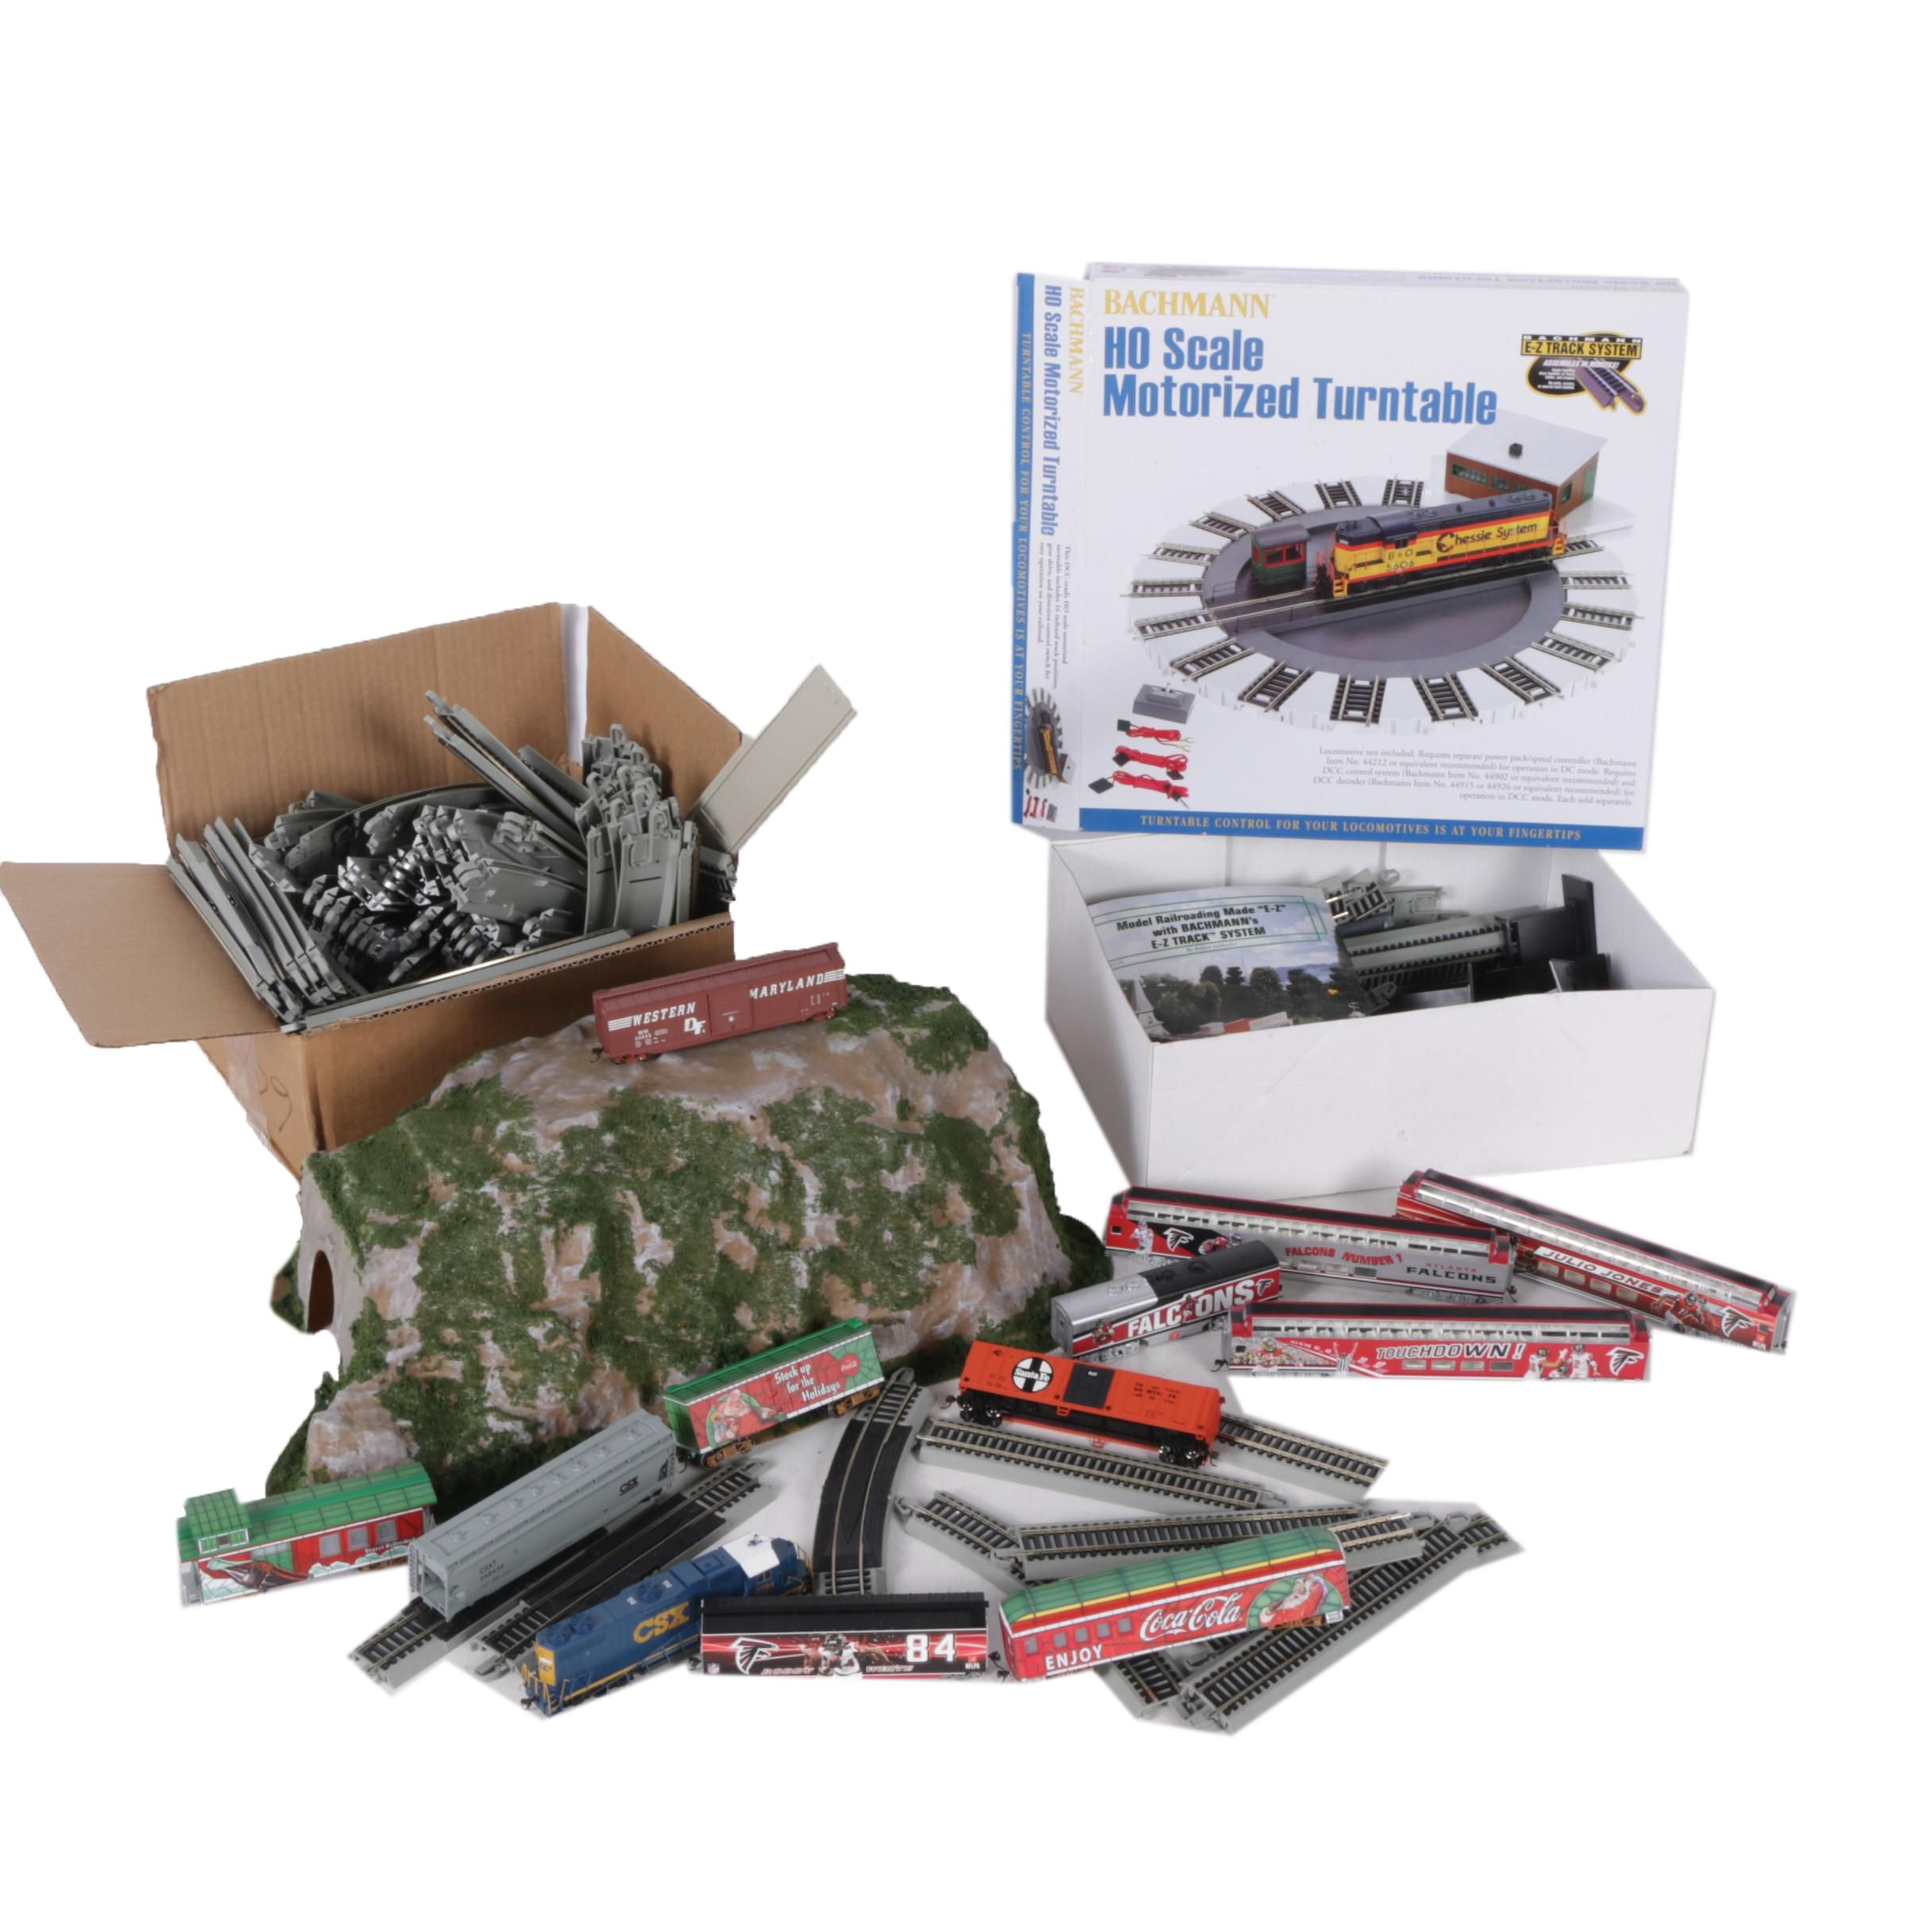 HO Scale Trains and Accessories Including Motorized Turntable and Coca-Cola Cars